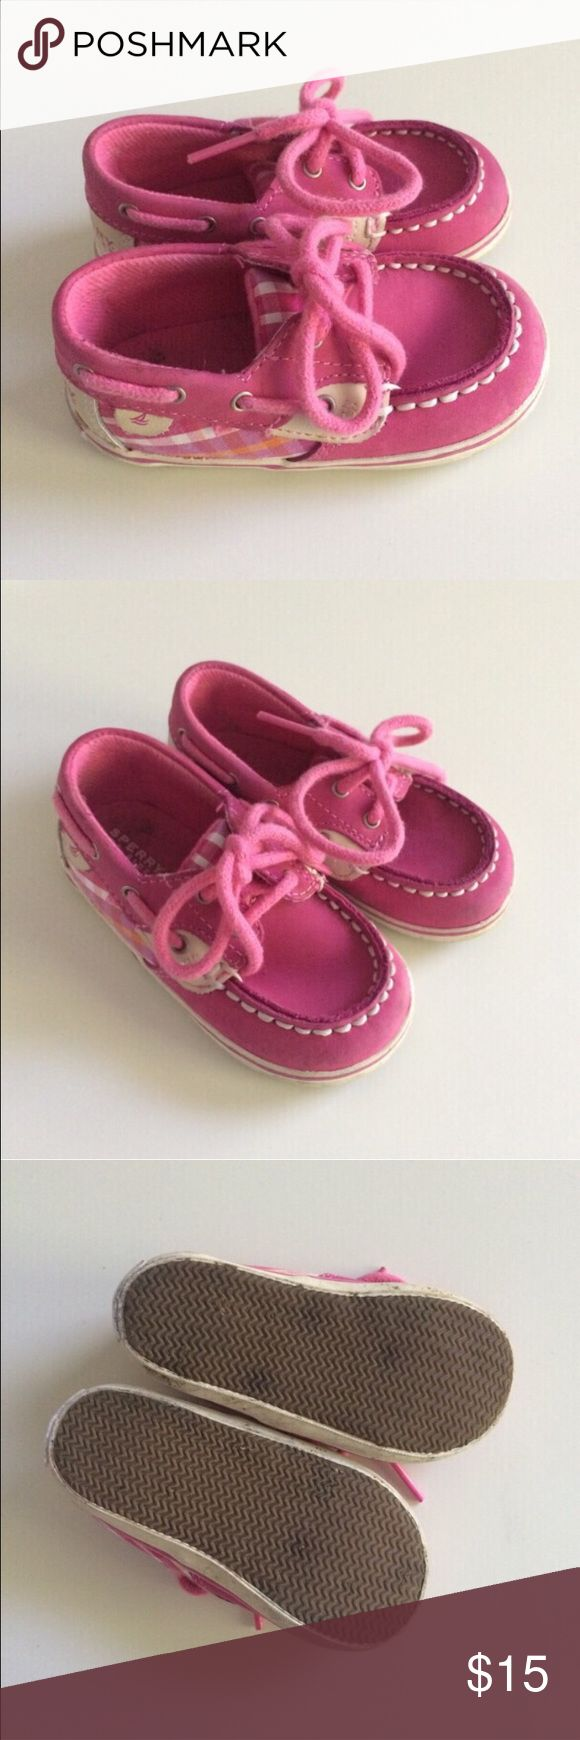 Sperry Kids Pink Gingham Boat Shoes - Size 4 Sperry boat shoes are adorable on their own so add in a mini size and it's too much. We loved these shoes and wore them off and on but not a ton. There is some light spotty staining on the inside of one of the shoes (pic 4) but otherwise in very good condition! Sperry Top-Sider Shoes Baby & Walker